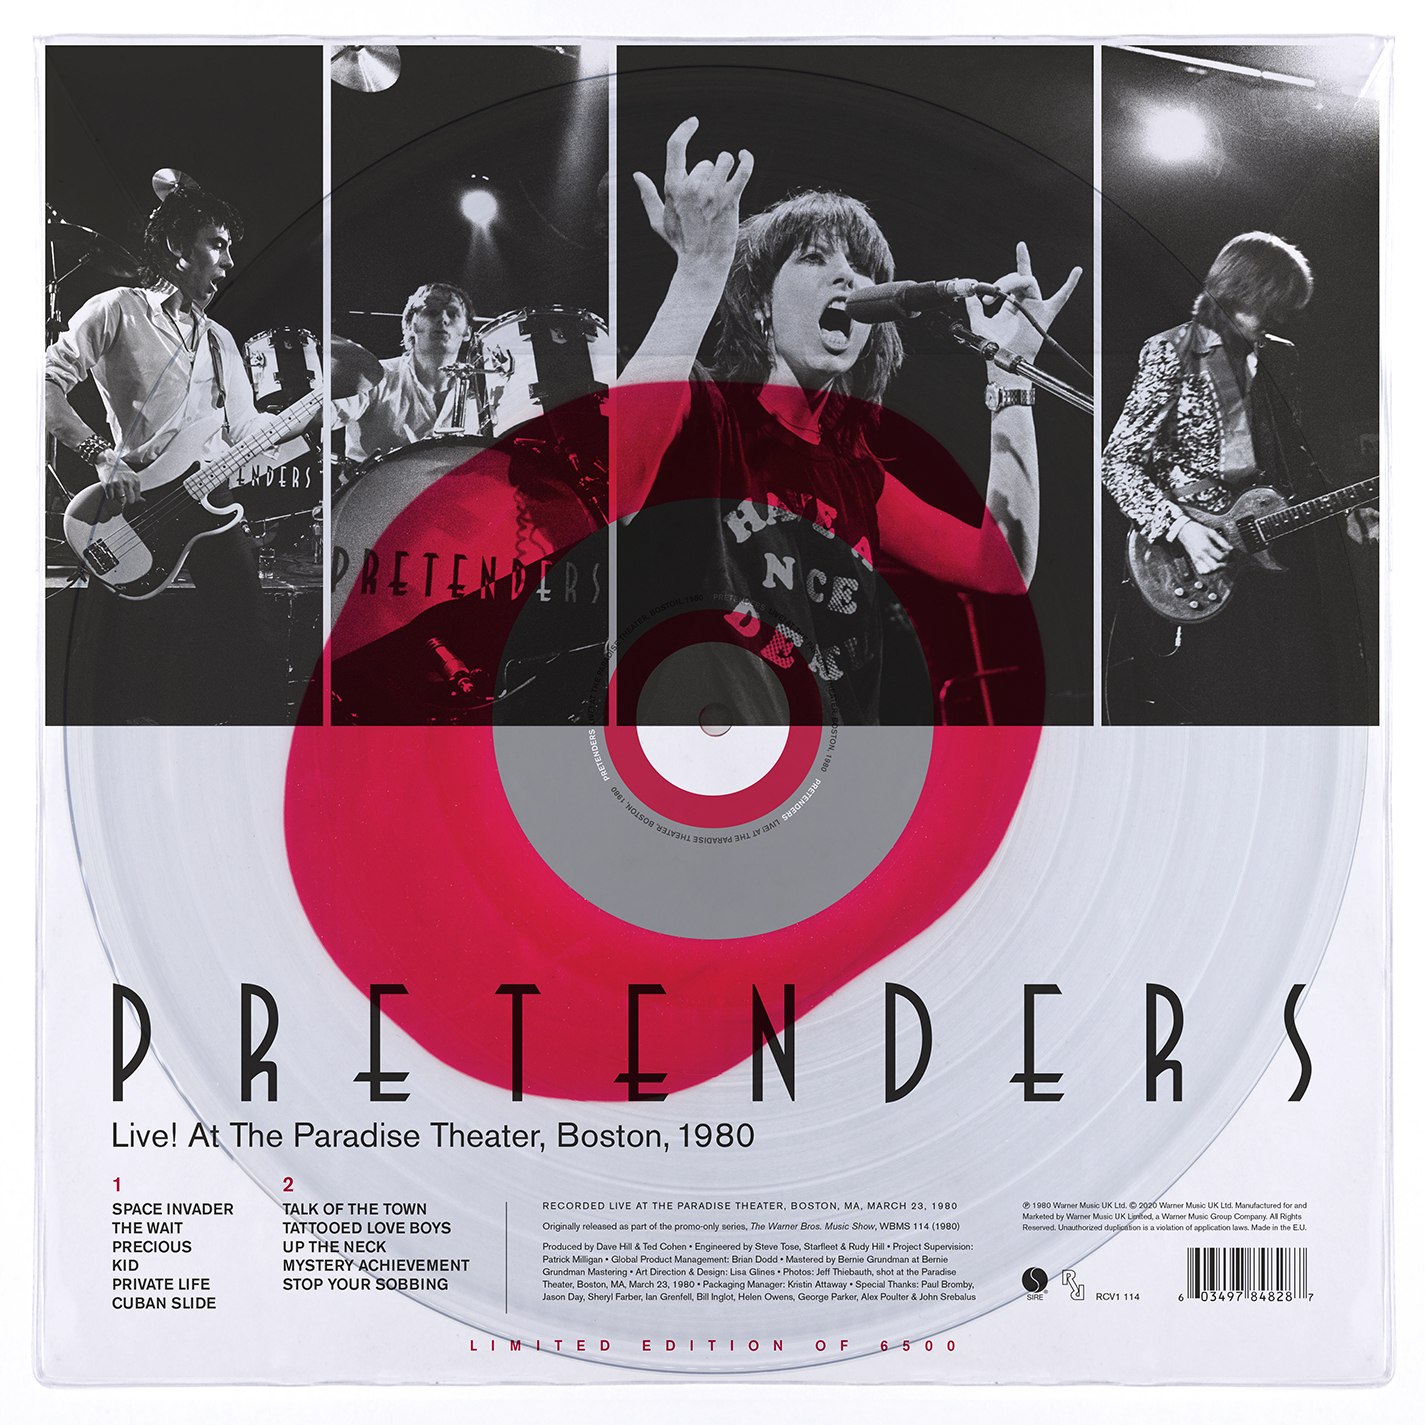 Pretenders - Live! At The Paradise, Boston, 1980 [RSD Drops Aug 2020]